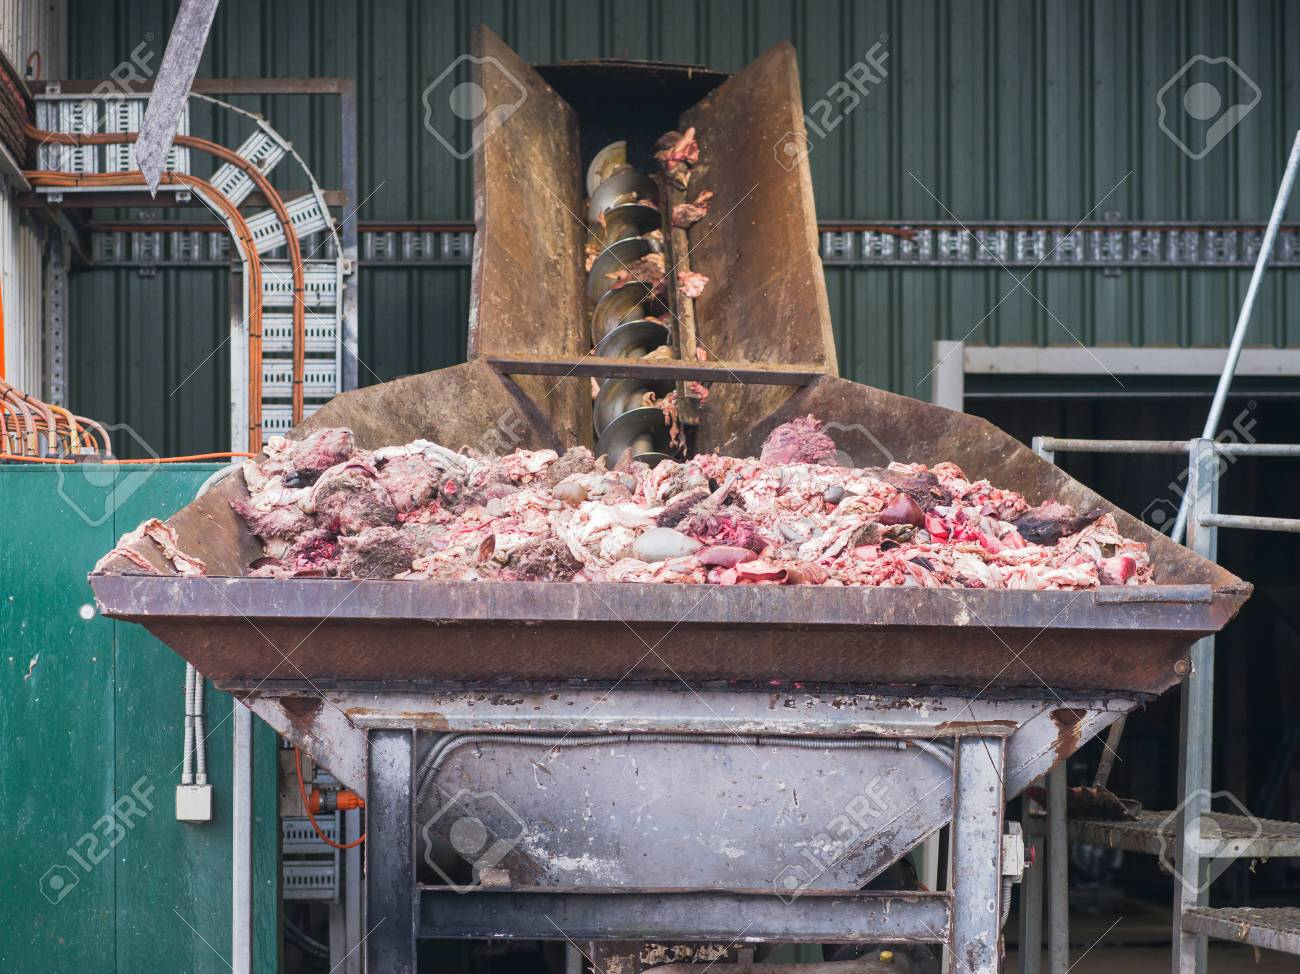 Byproducts from a sheep abattoir in the input bin of a meat and